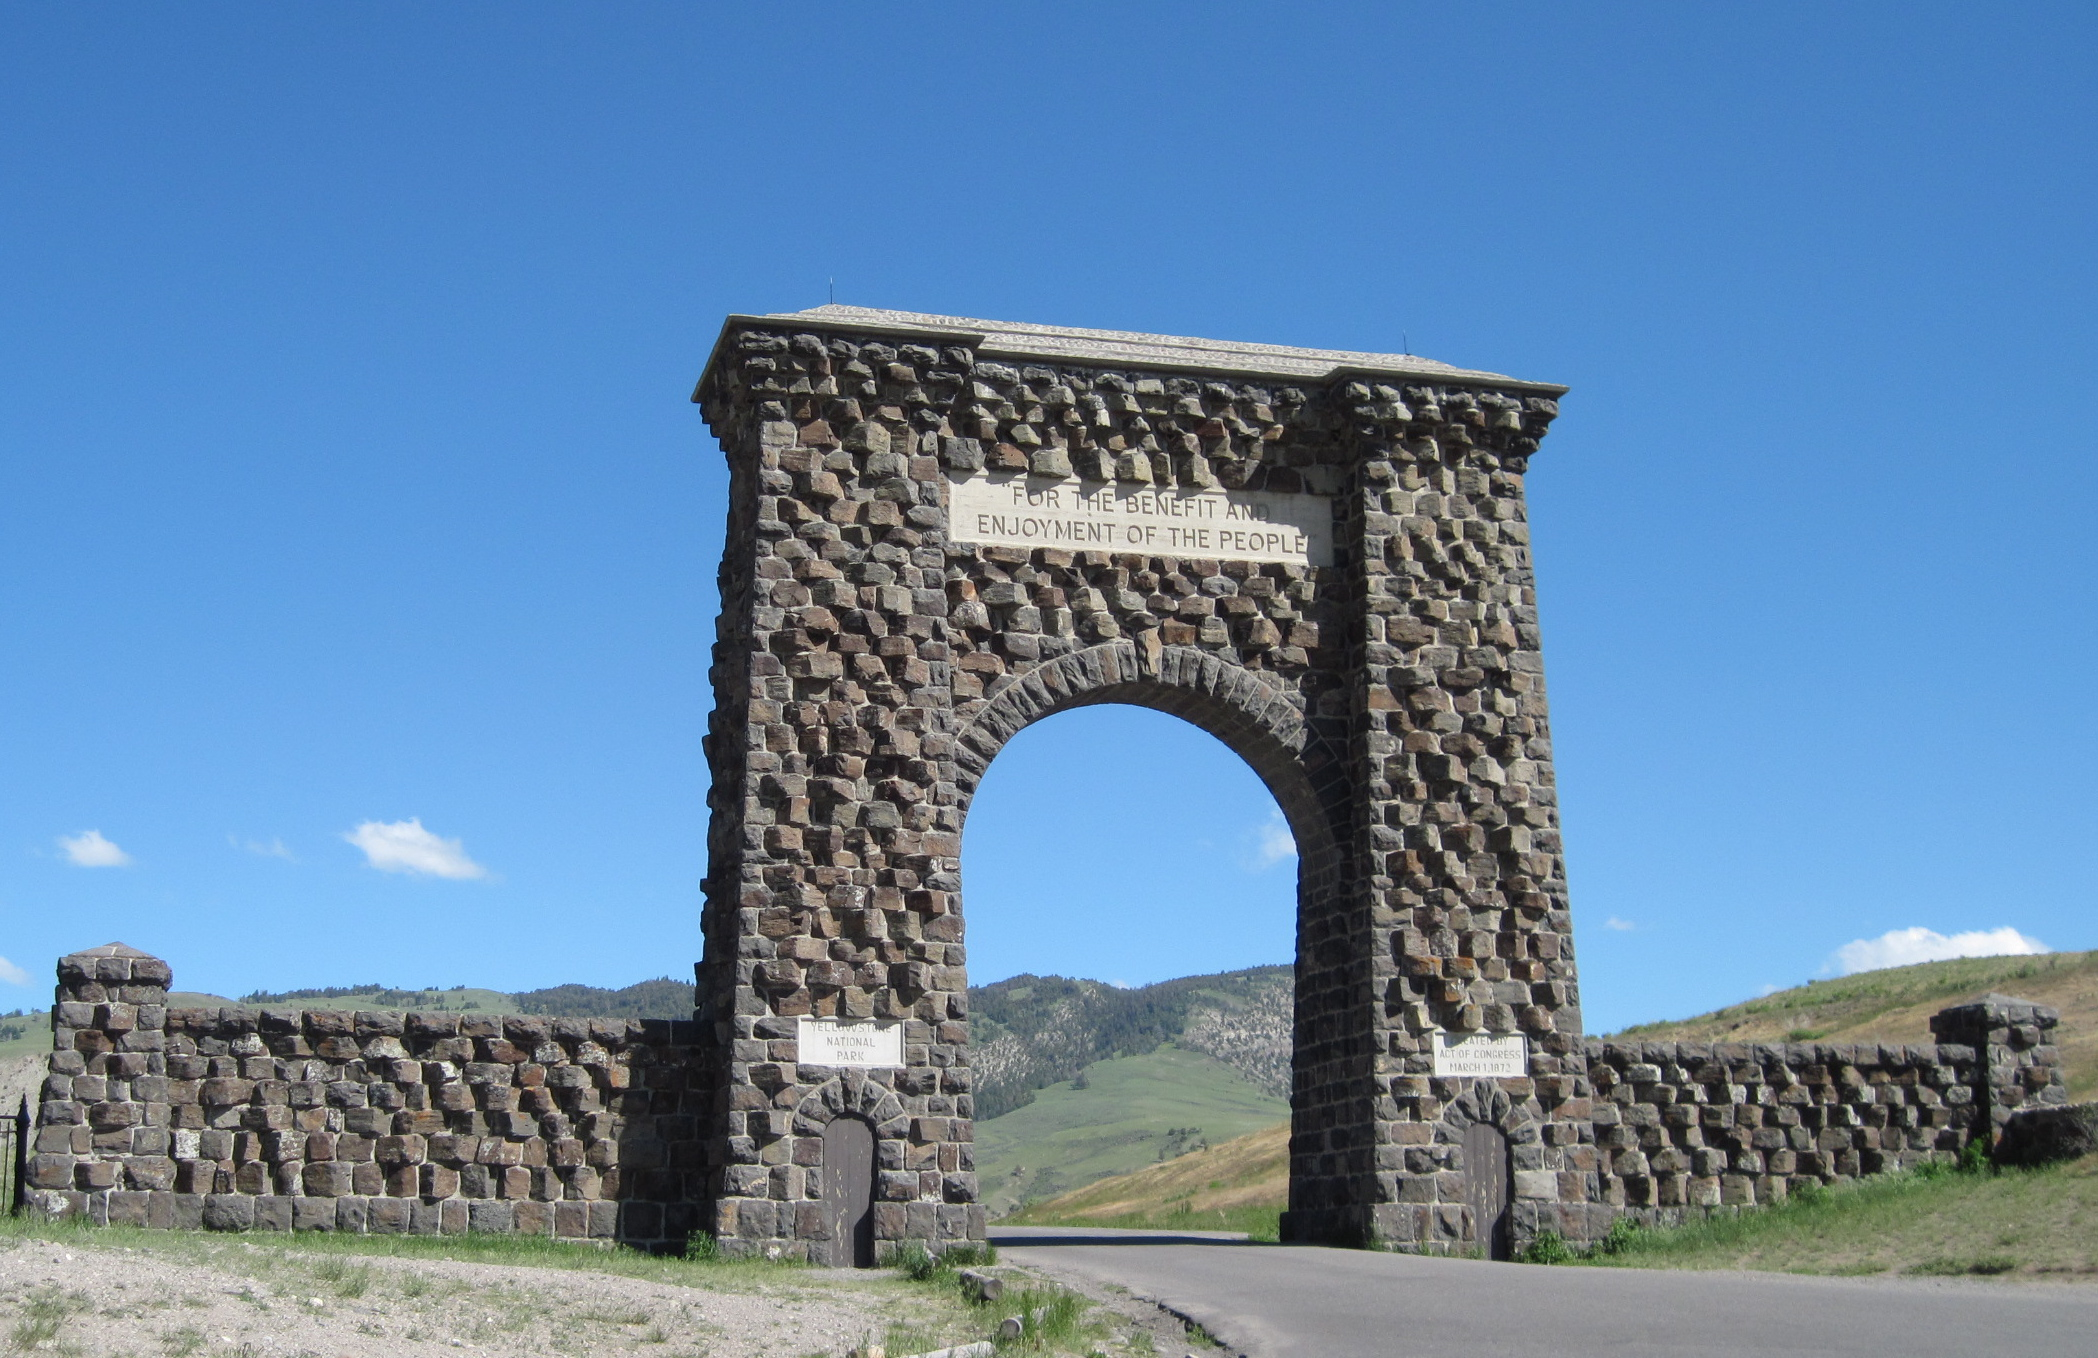 """The Roosevelt Arch at the north entrance of Yellowstone National Park sends a clear message to park visitors, that national parks are """"For the benefit and enjoyment of all people,"""" Yellowstone National Park, Wyoming, June 22, 2009 